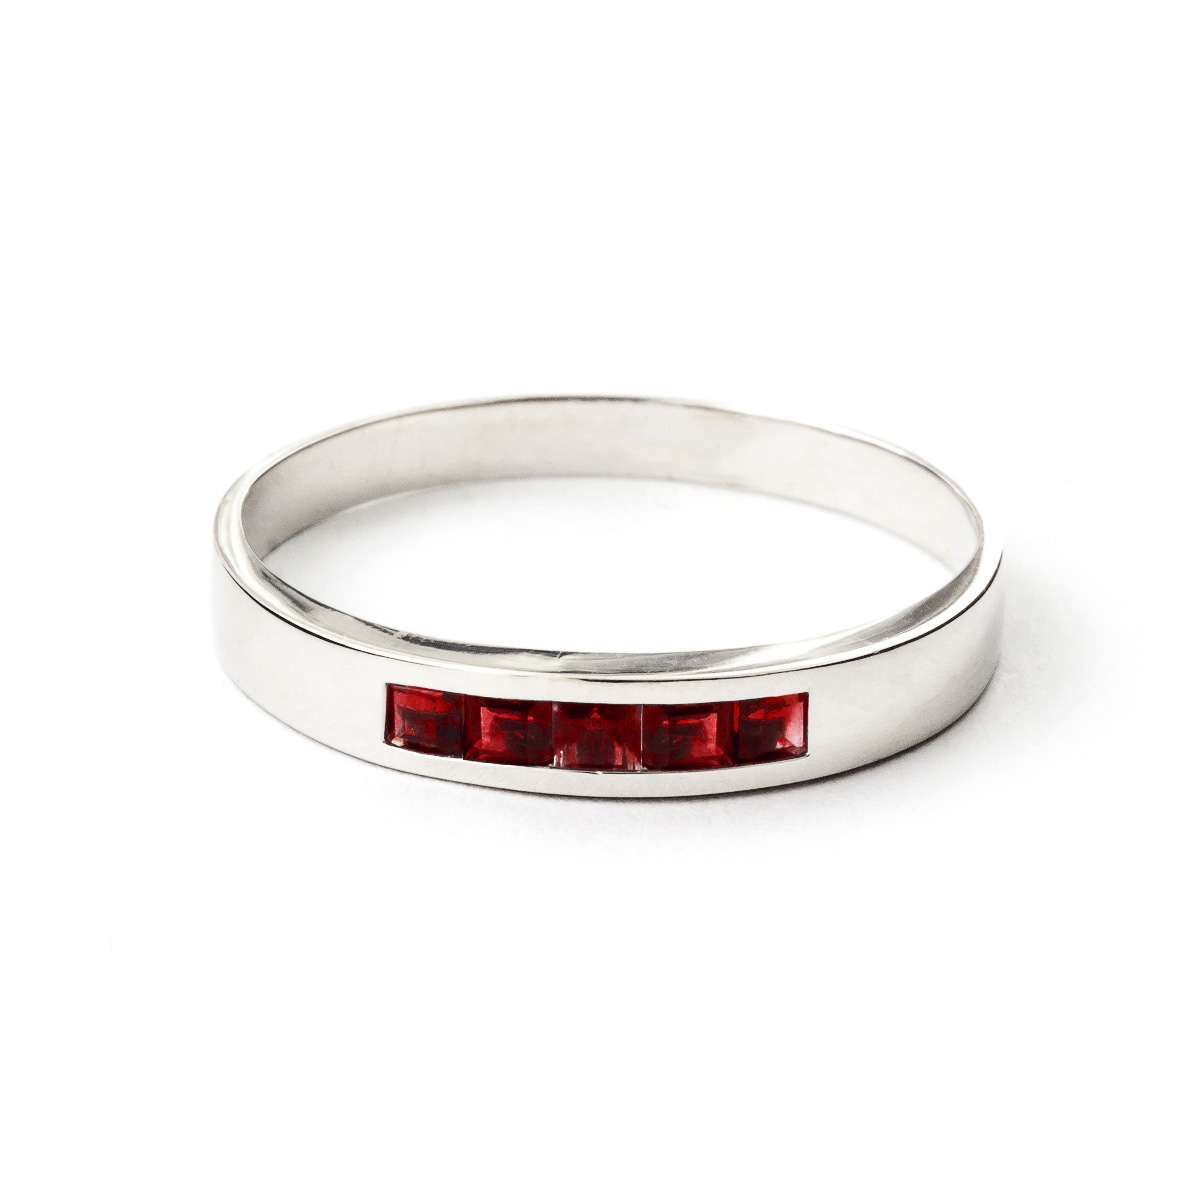 Garnet Princess Prestige Ring 0.6 ctw in 9ct White Gold